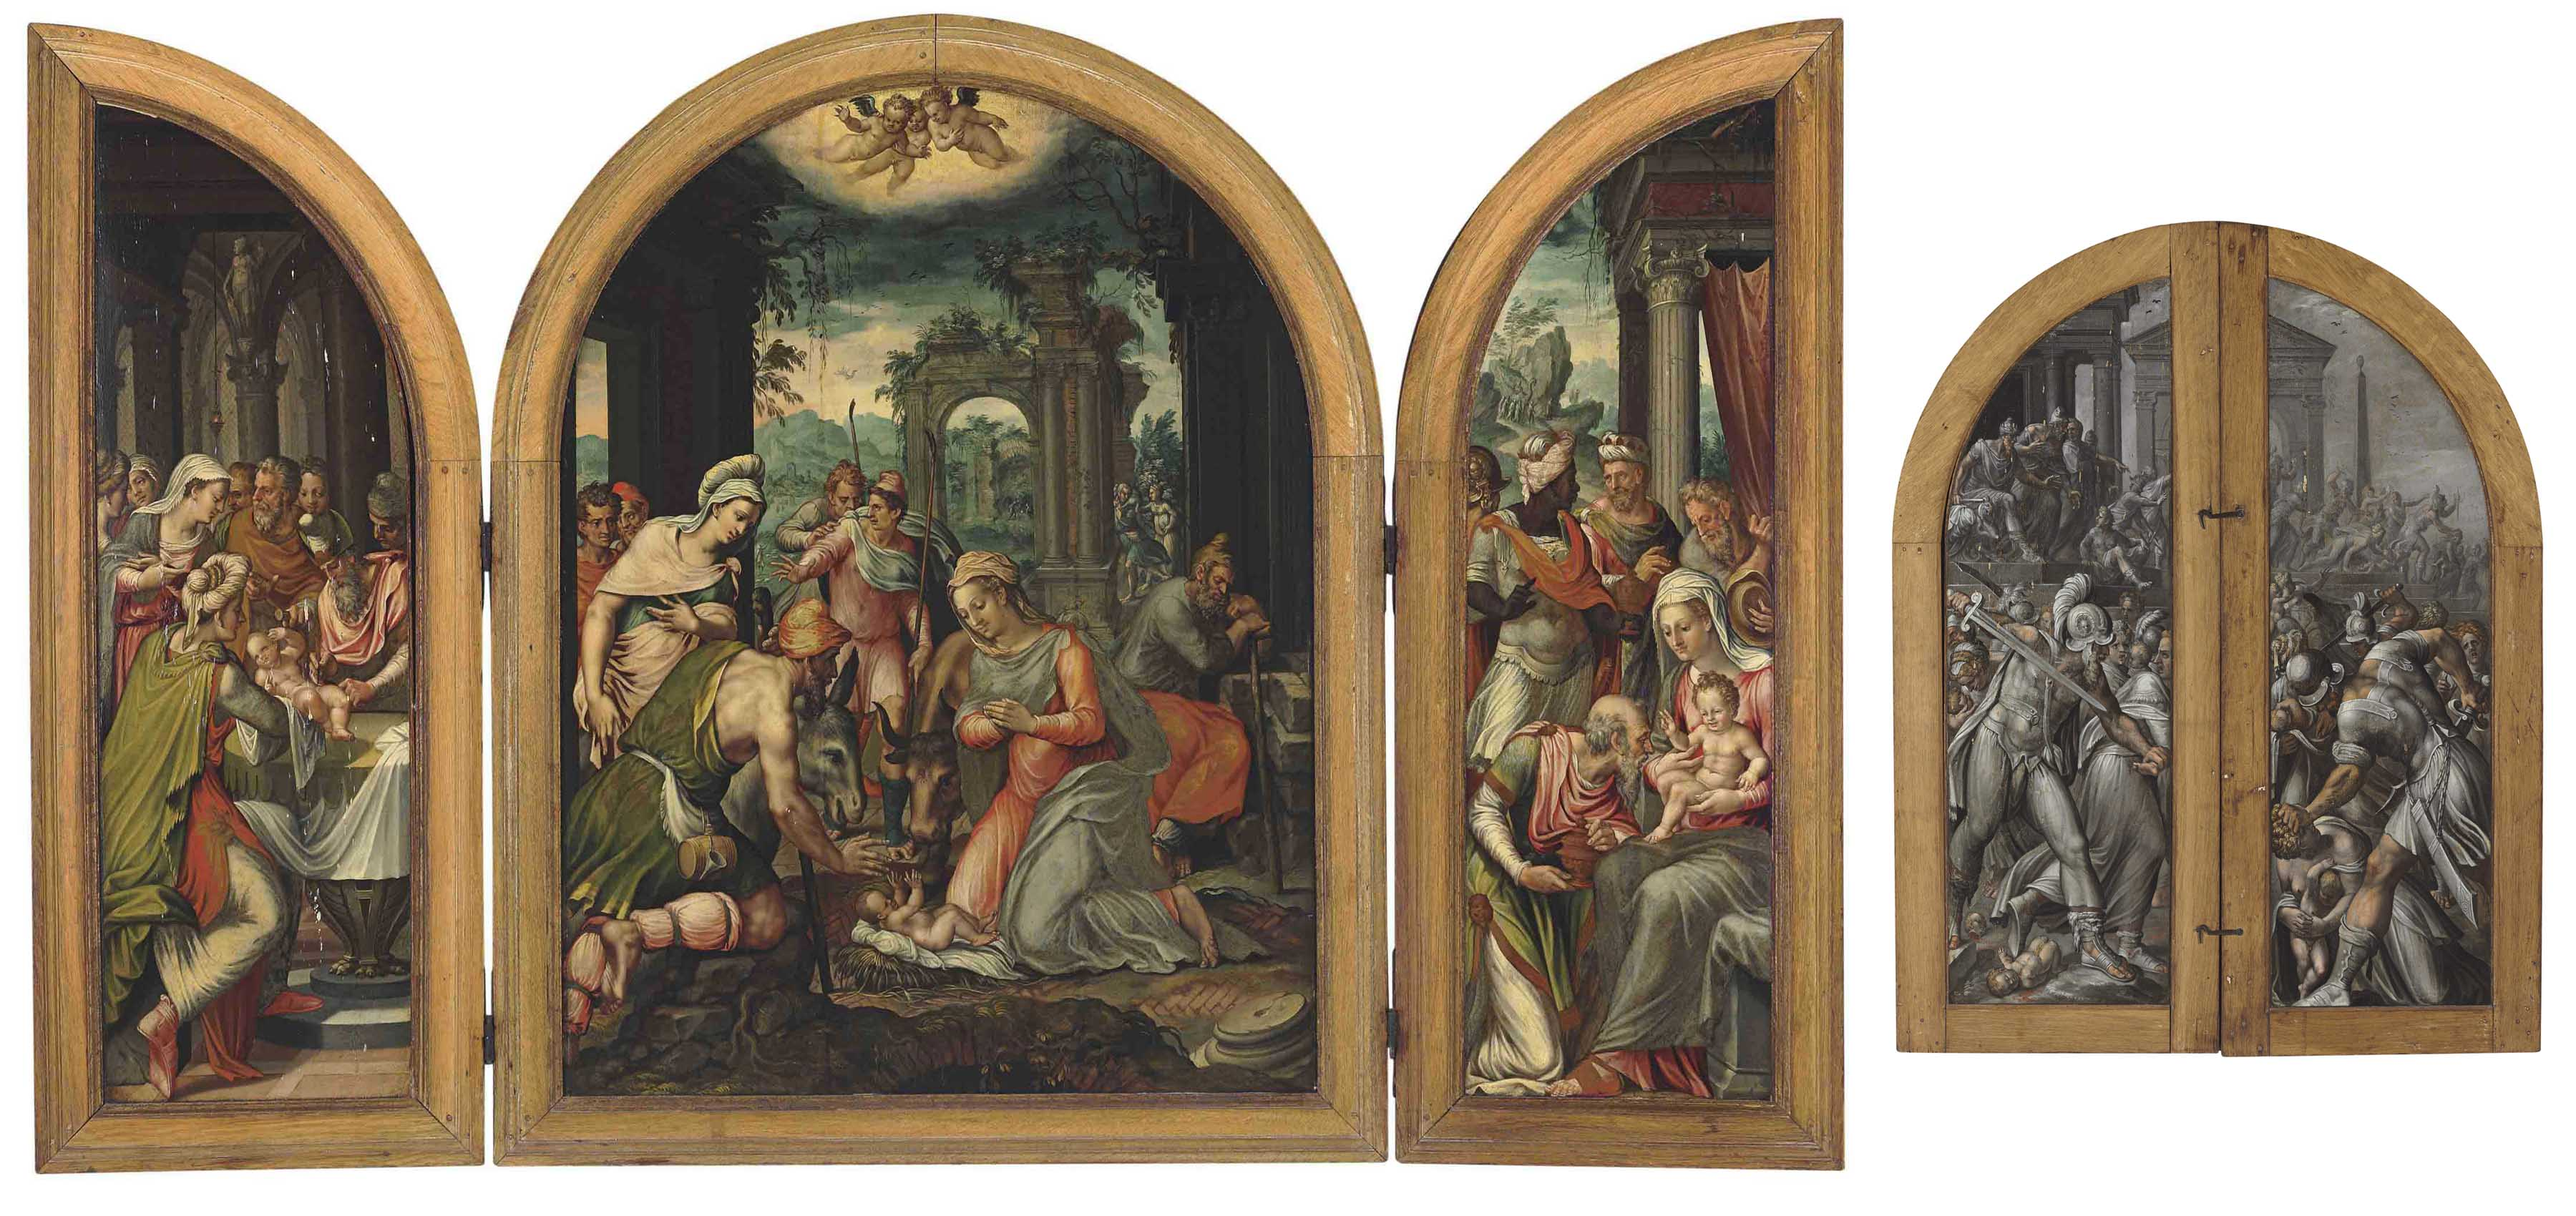 A triptych of The Adoration of the Shepherds; The Circumcision on the left wing; The Adoration of the Magi on the right wing; and The Massacre of the Innocents, en grisaille, on the reverse of the wings